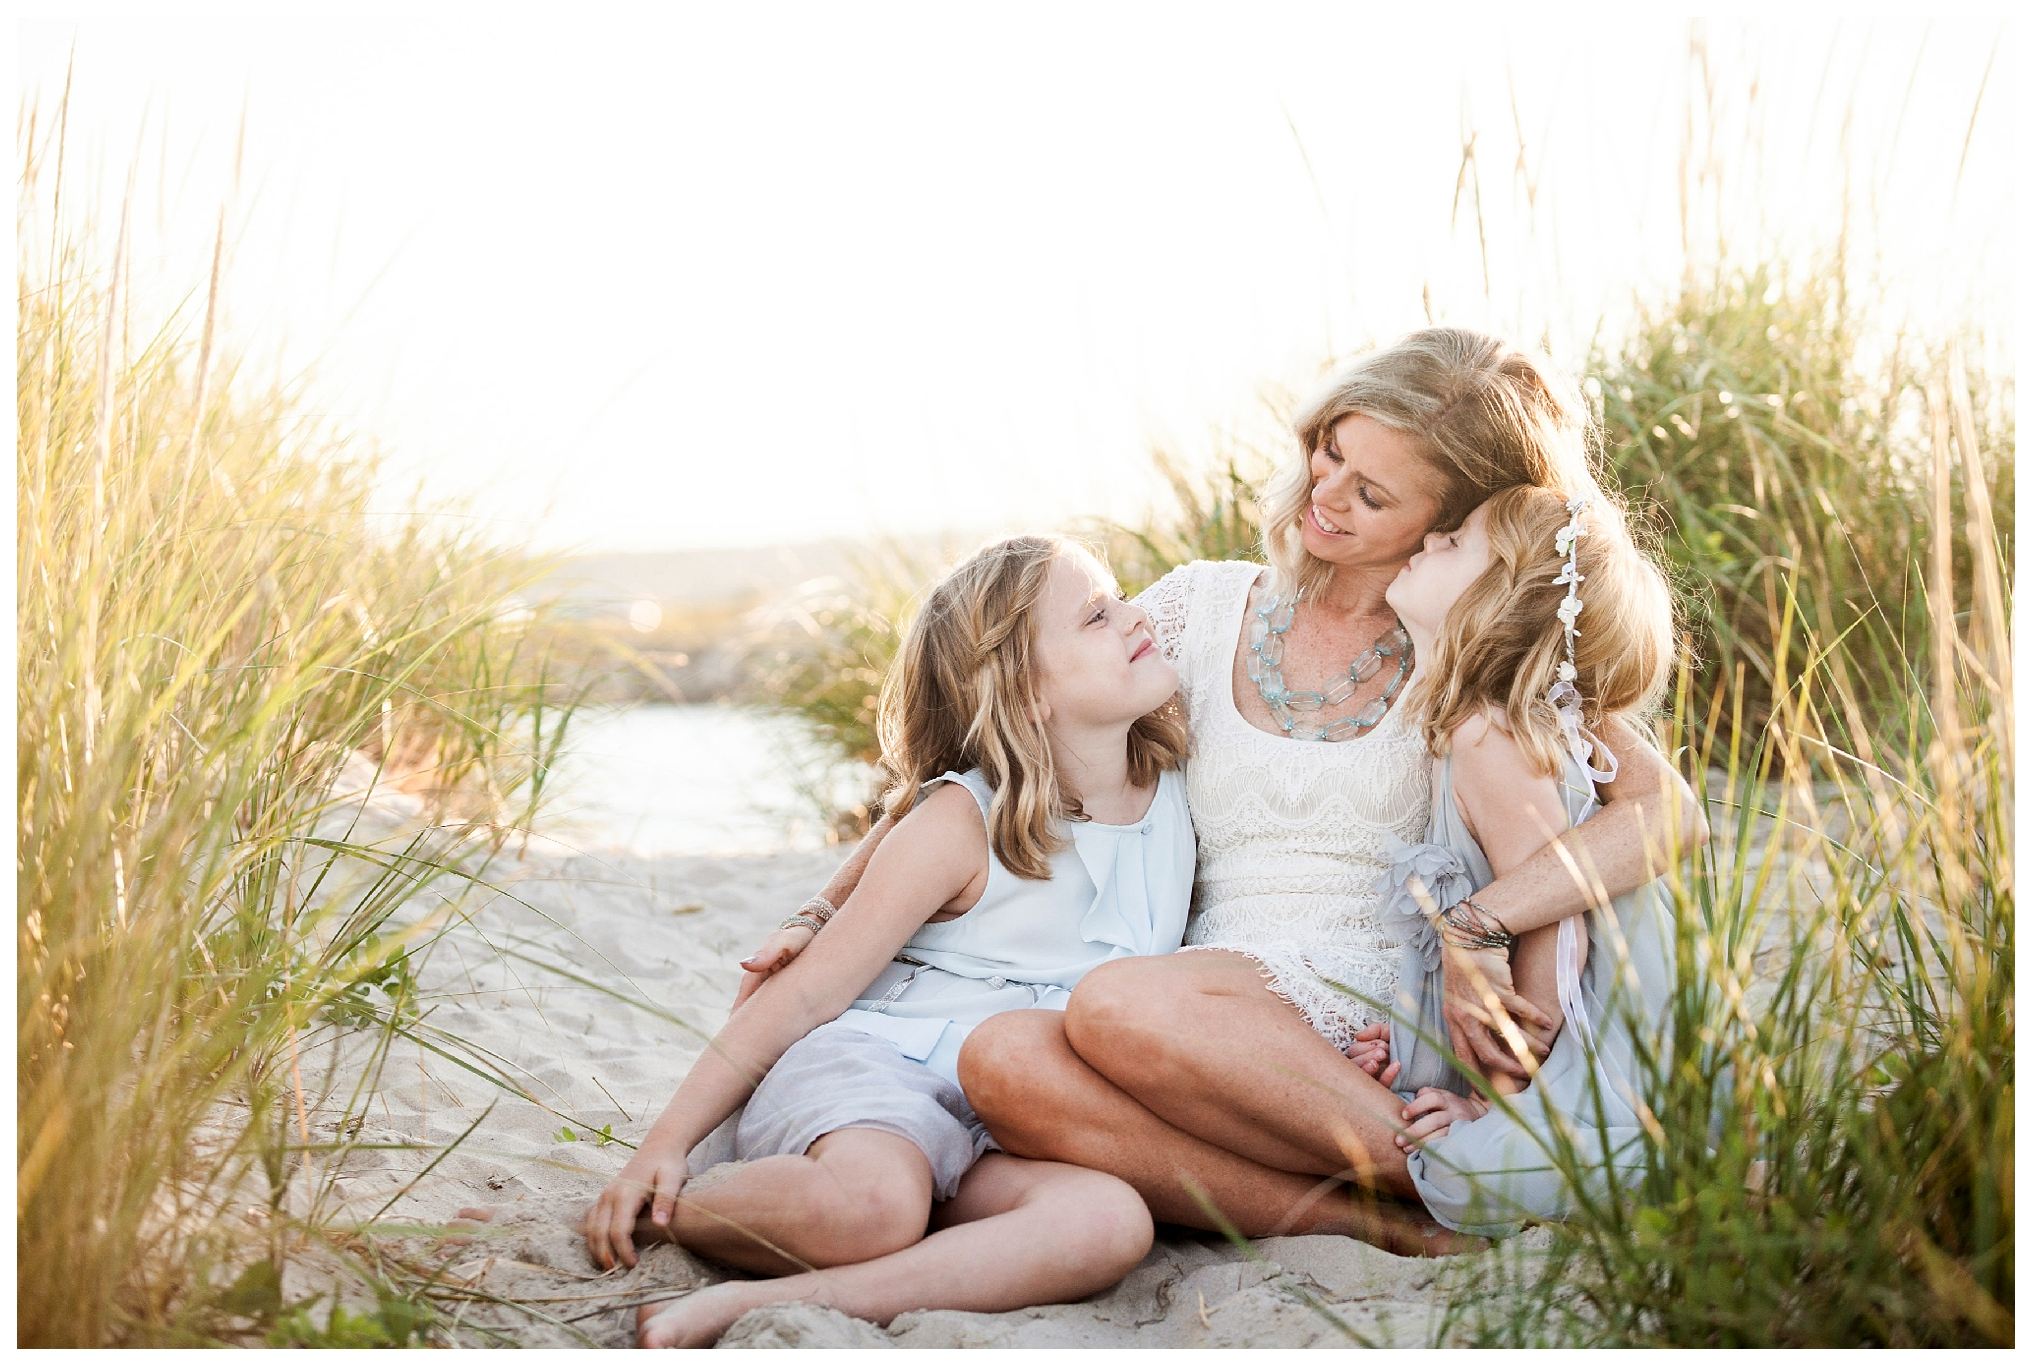 This is one of my favorite photos from a family session in York Maine with my two daughters. I adore photos of Mom with her babies and this one is very special to me.